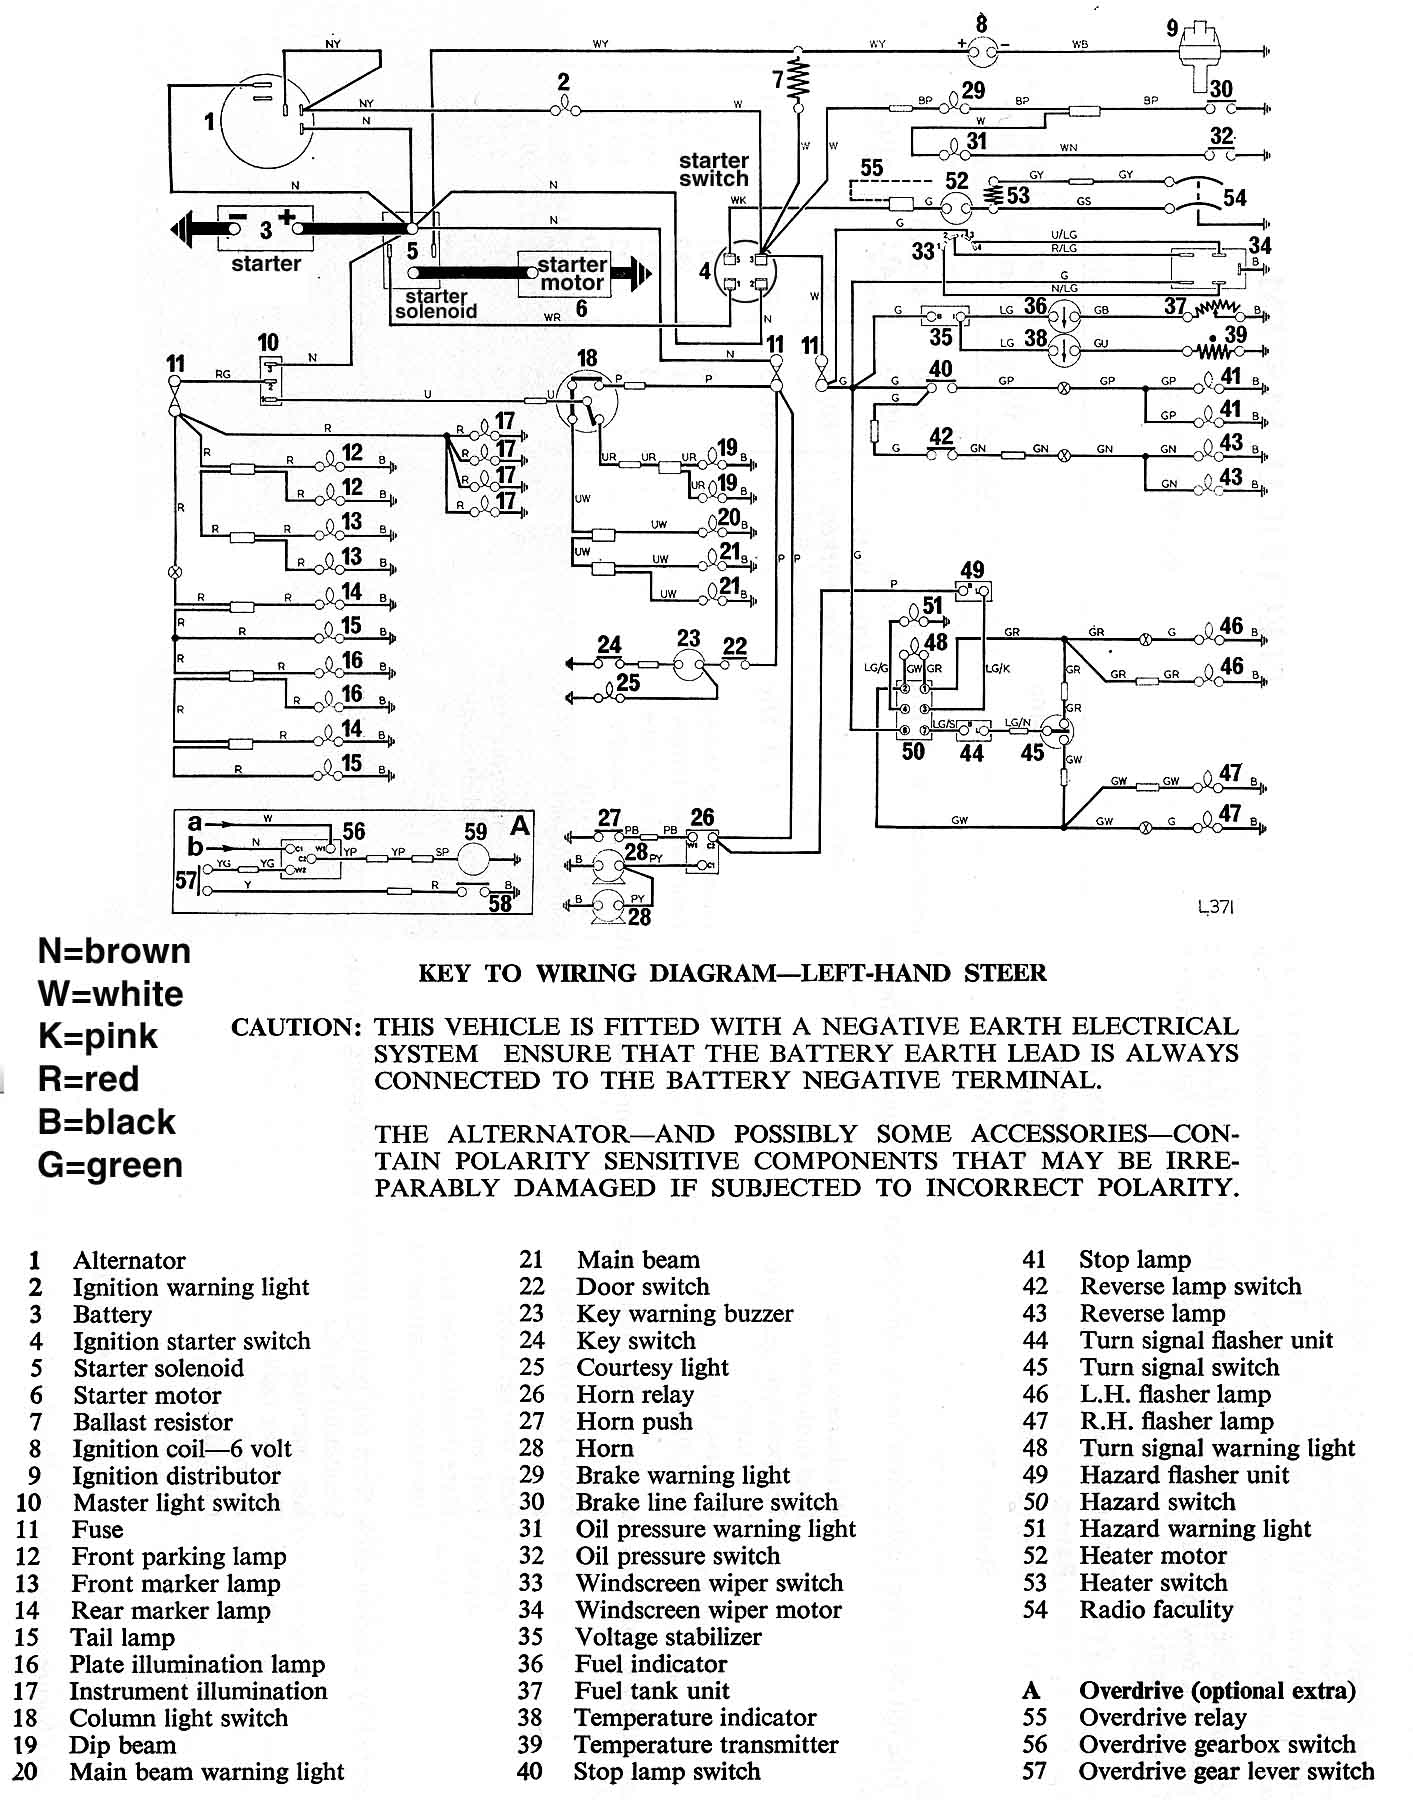 1975 Triumph Spitfire Wiring Diagram Library Courtesy Light Mkiv